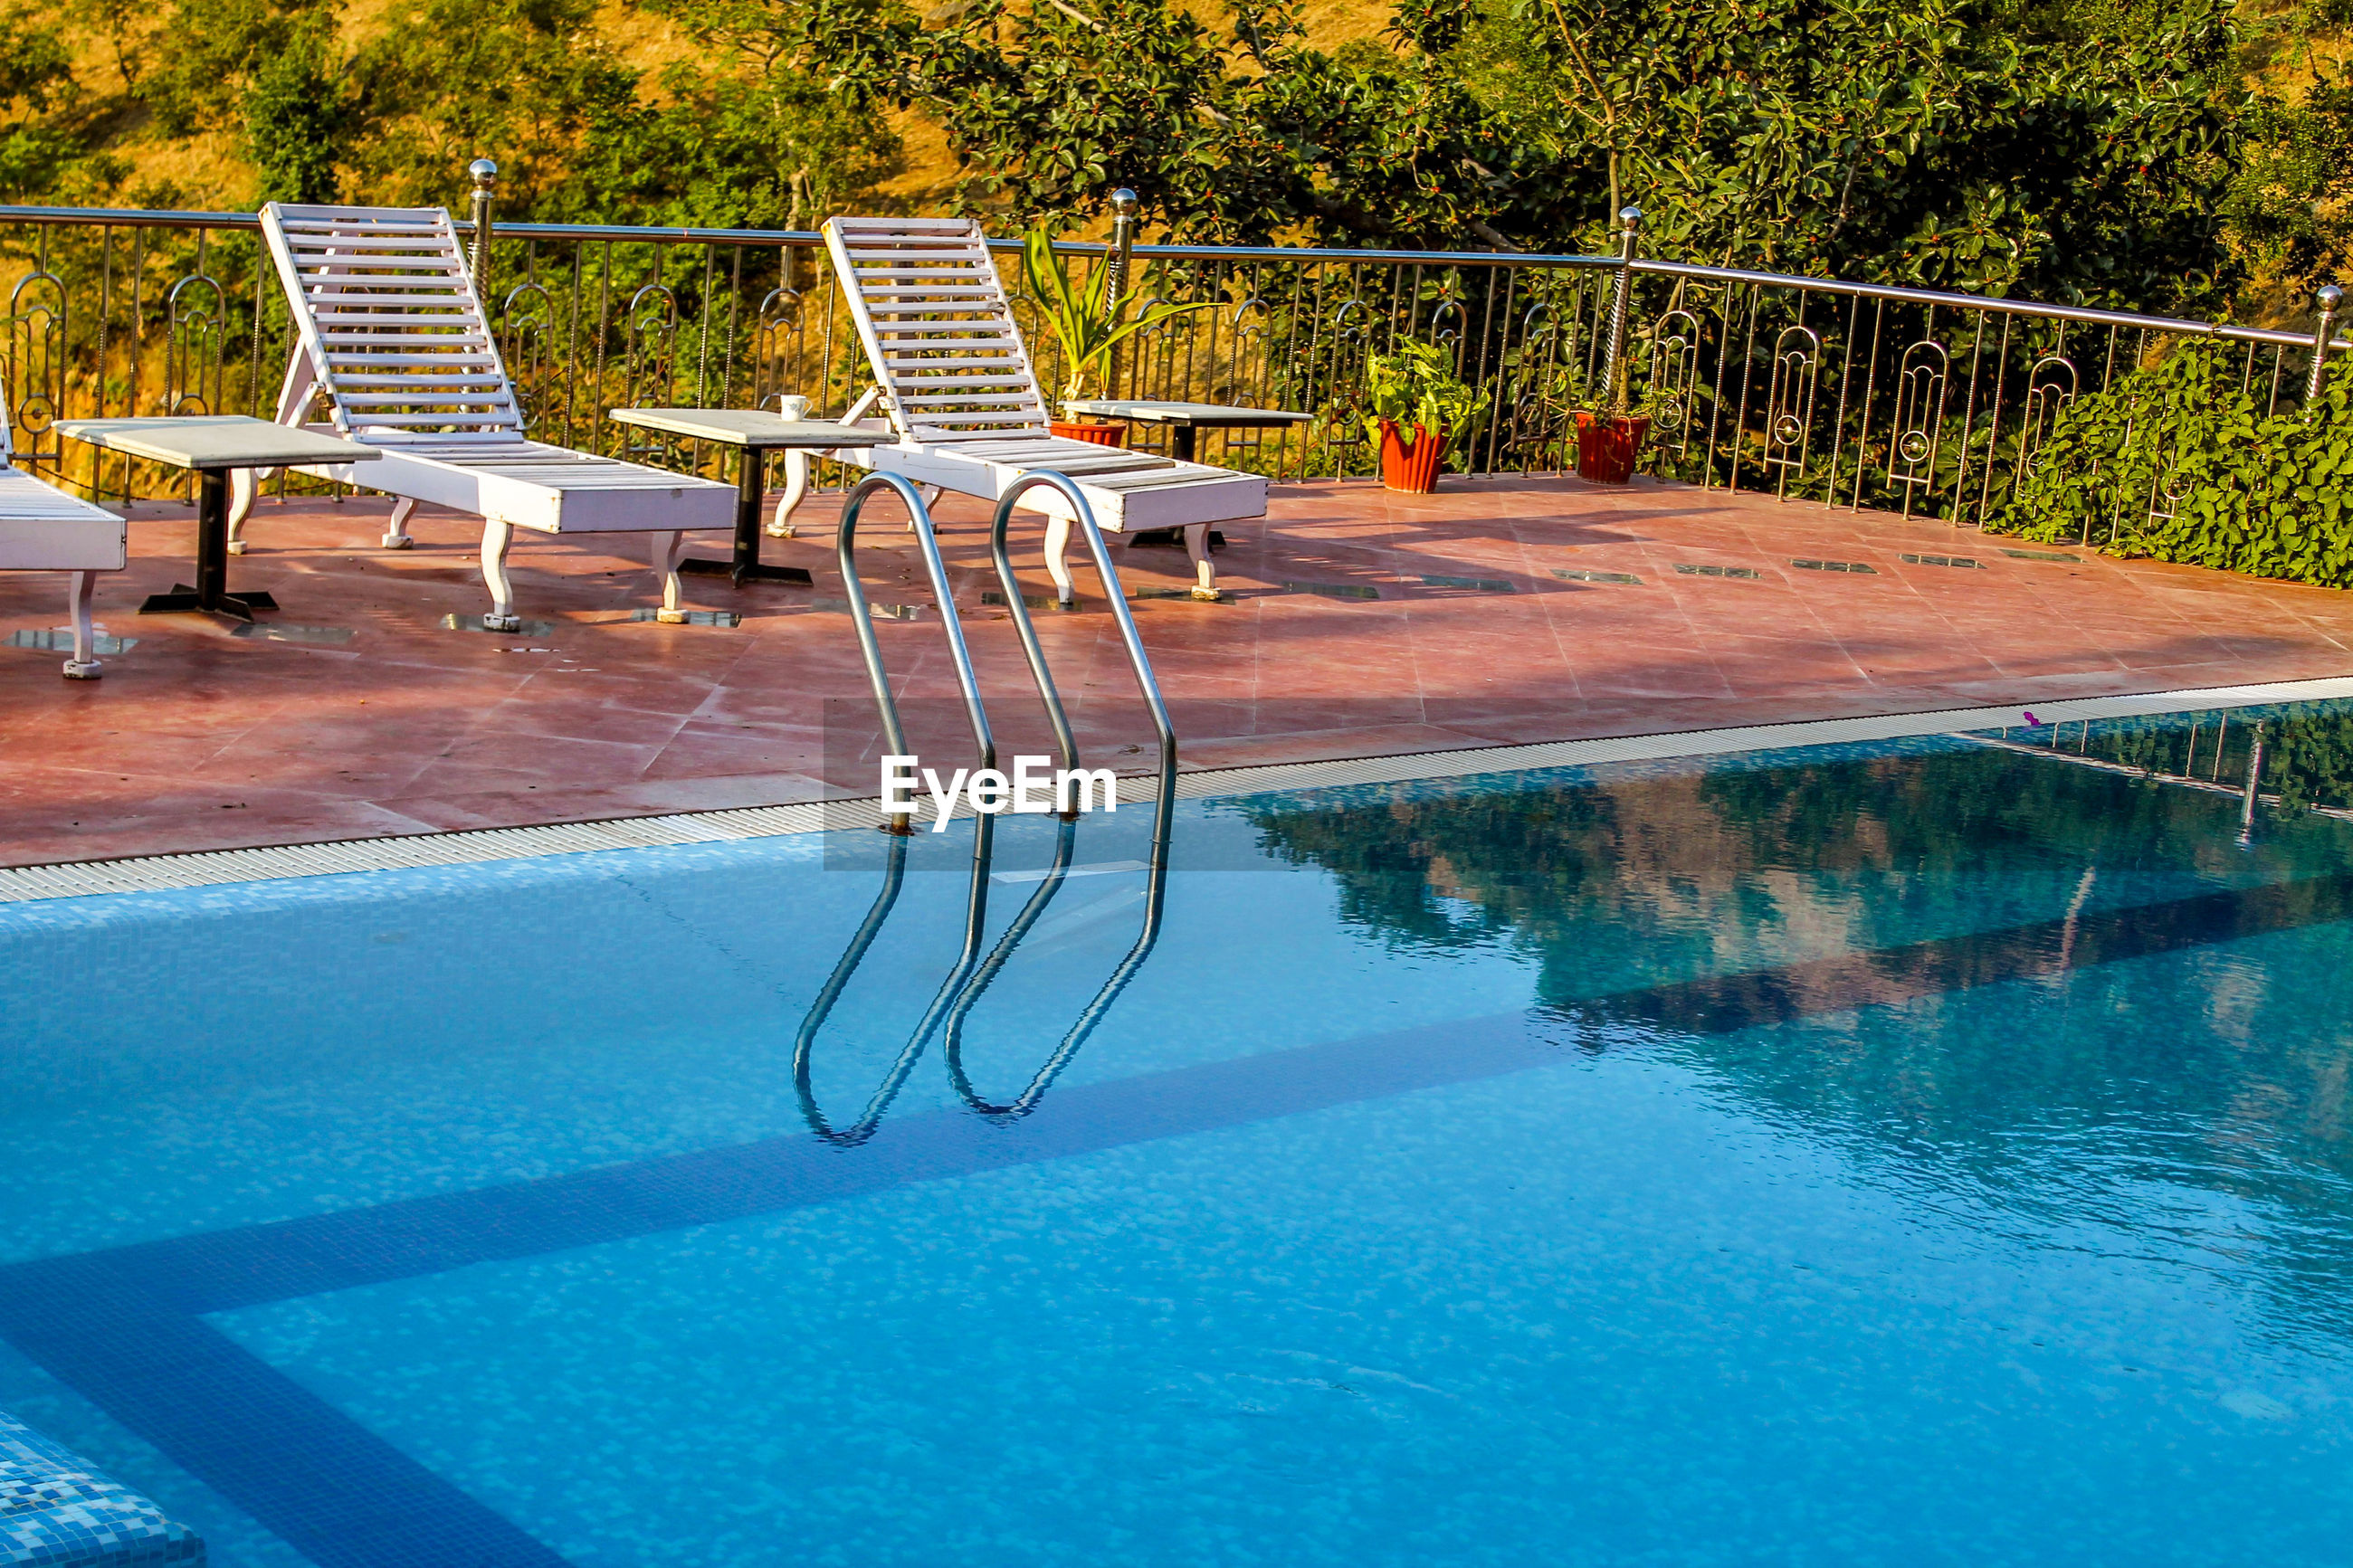 EMPTY CHAIRS ON SWIMMING POOL